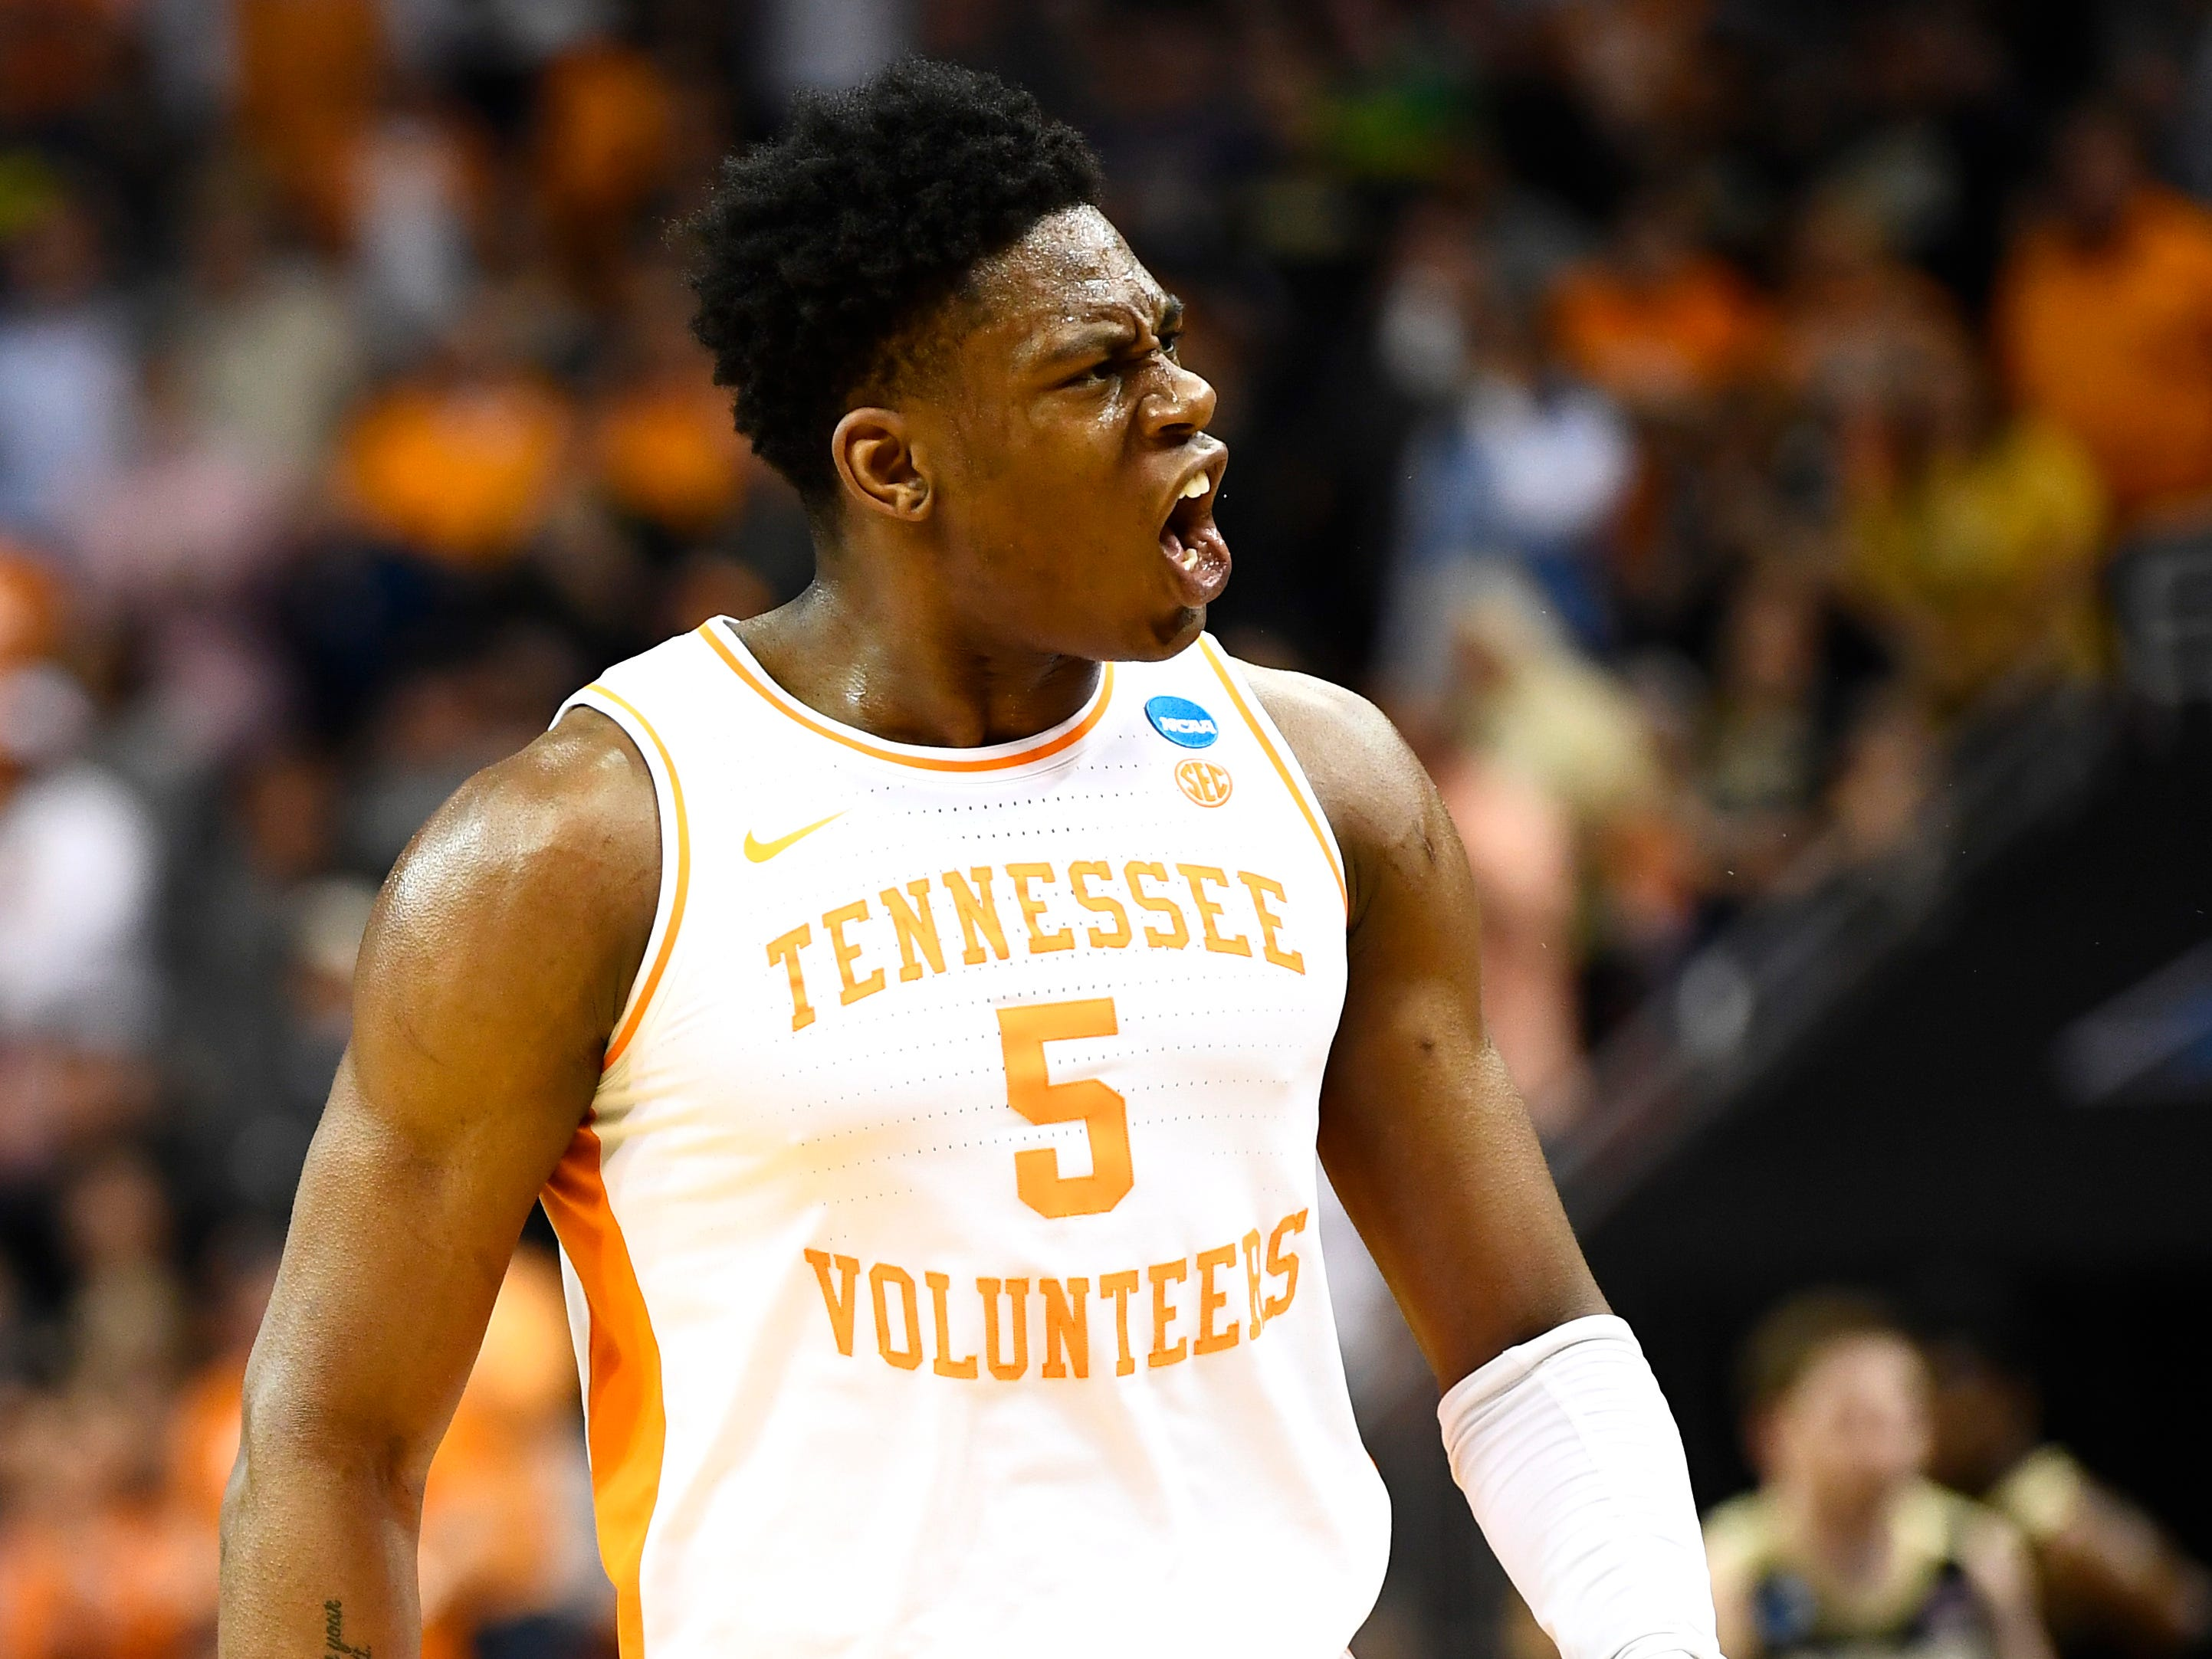 Tennessee guard Admiral Schofield (5) reacts during the team's run against the Purdue Boilermakers in the NCAA Tournament Thursday, March 28, 2019, at the KFC Yum! Center in Louisville, Ky.